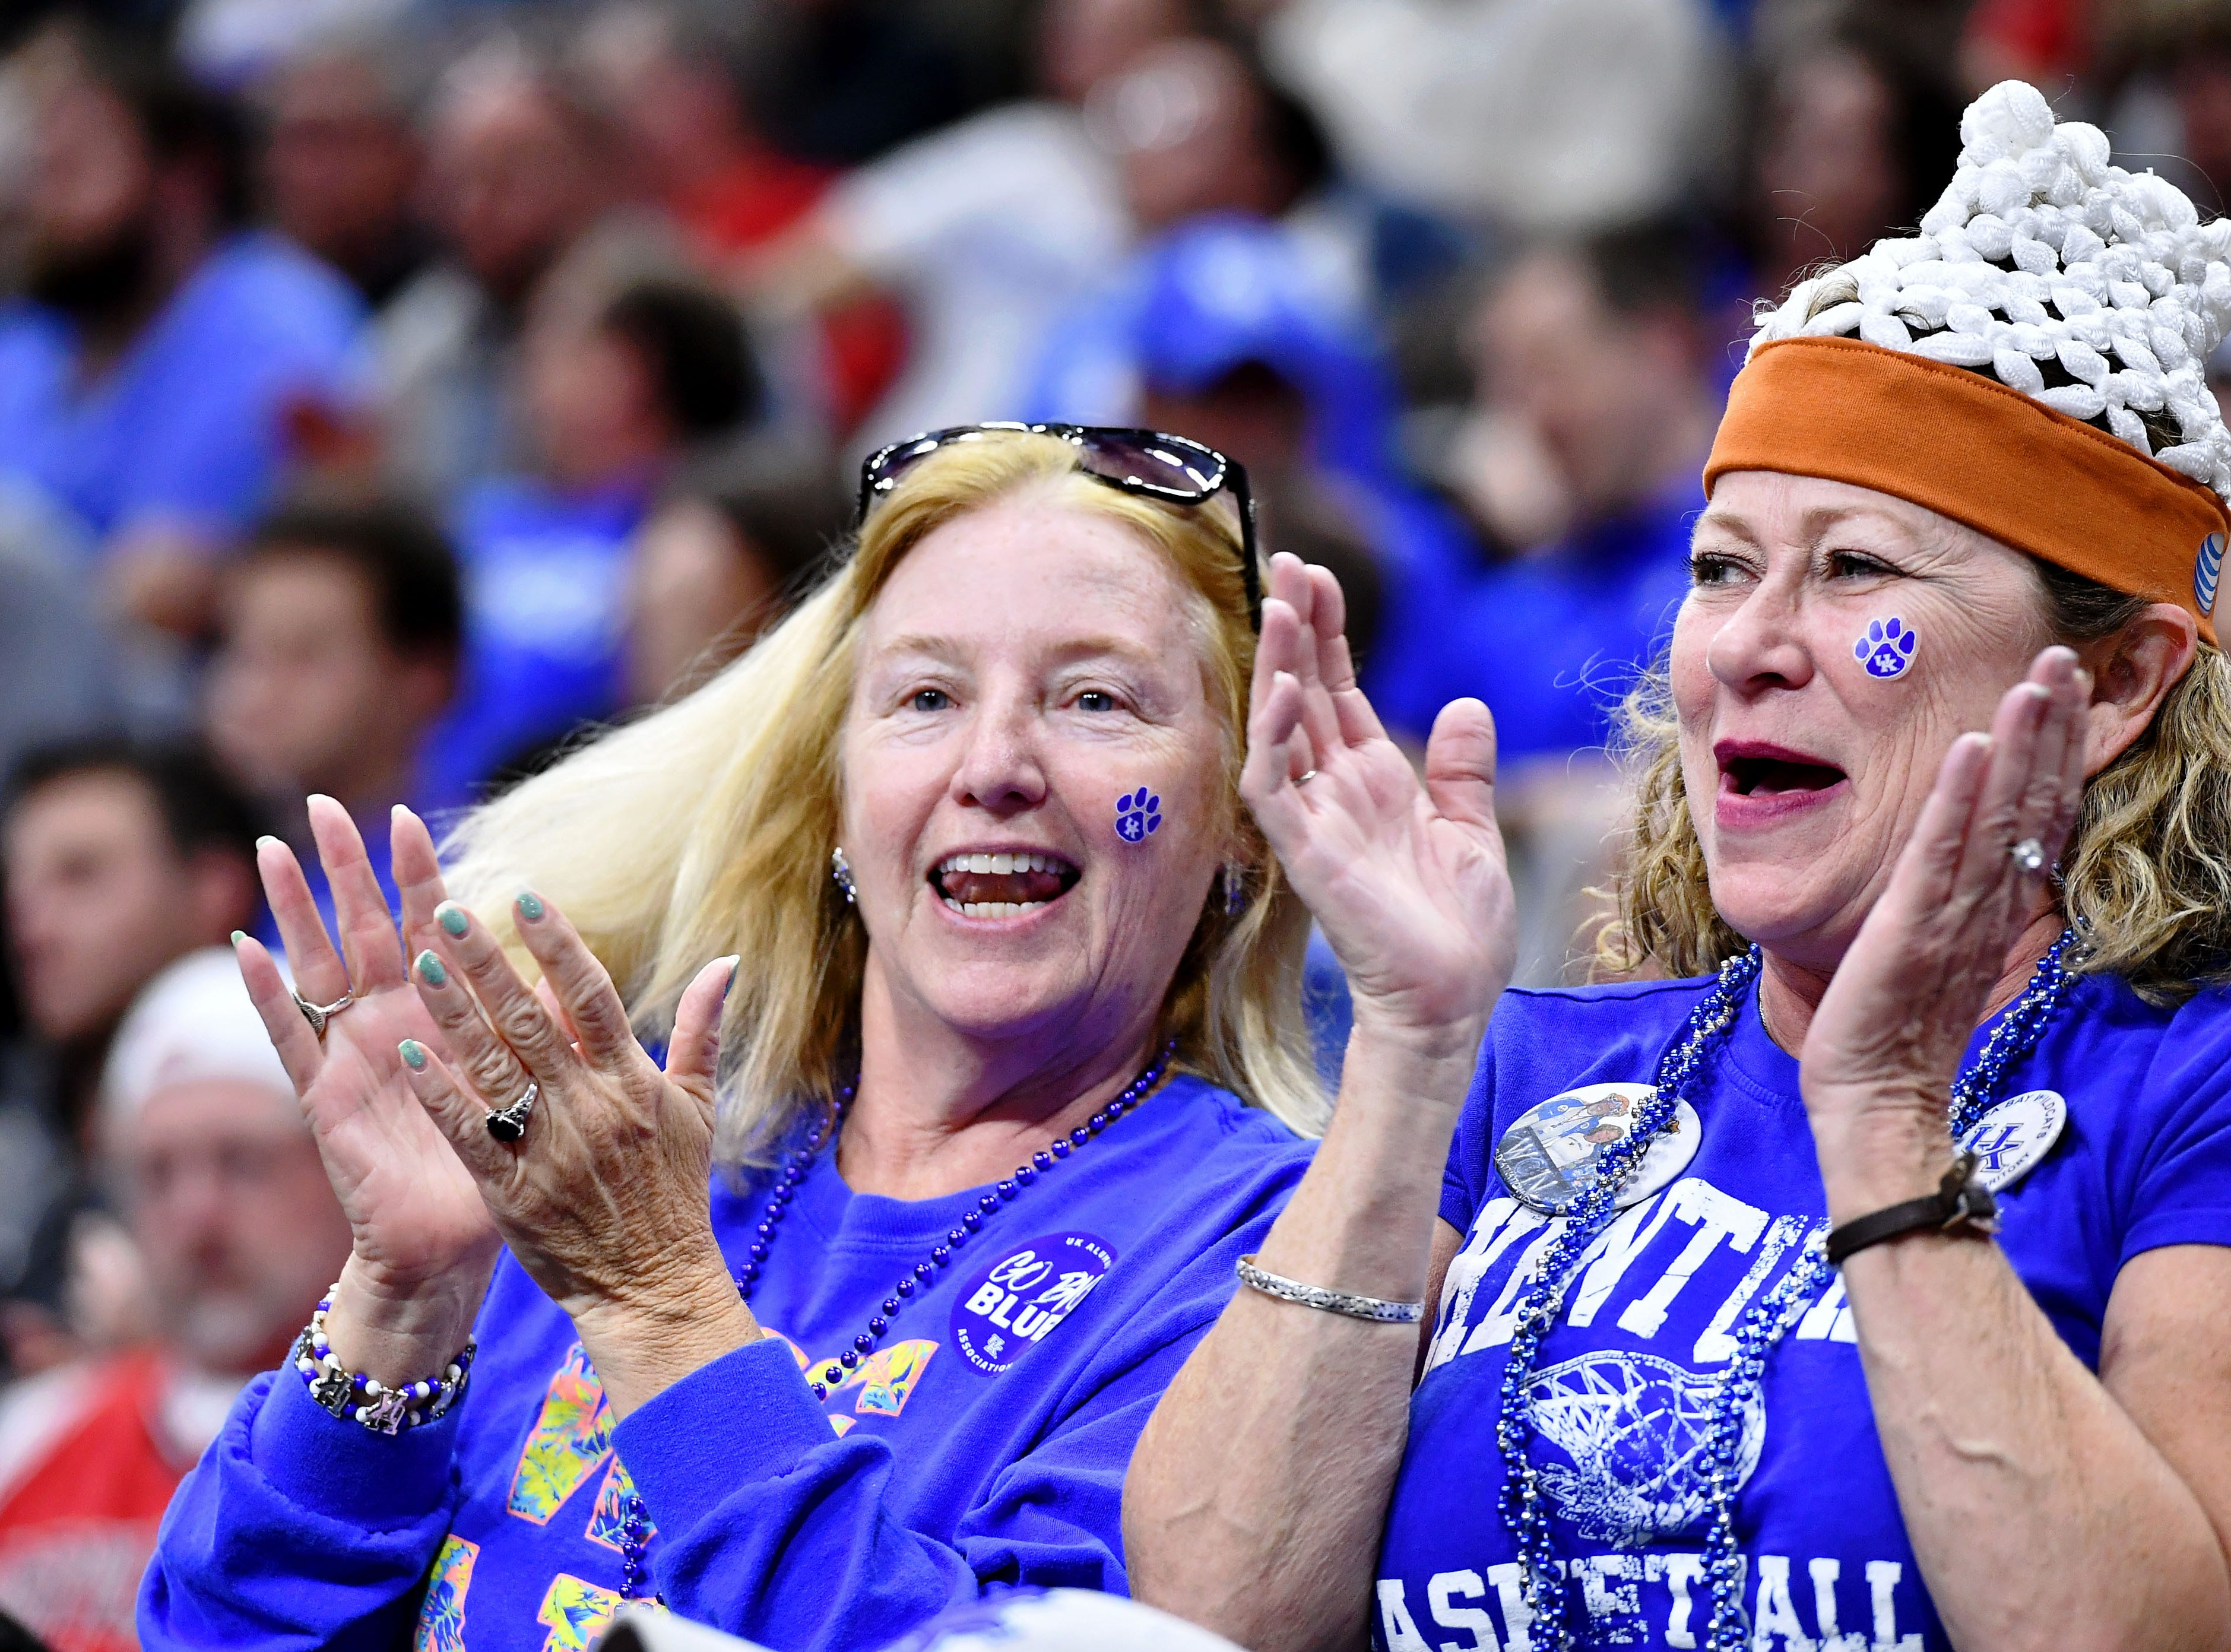 Round of 32: Kentucky Wildcats fans react to a play during the second half of the game against the Wofford Terriers.